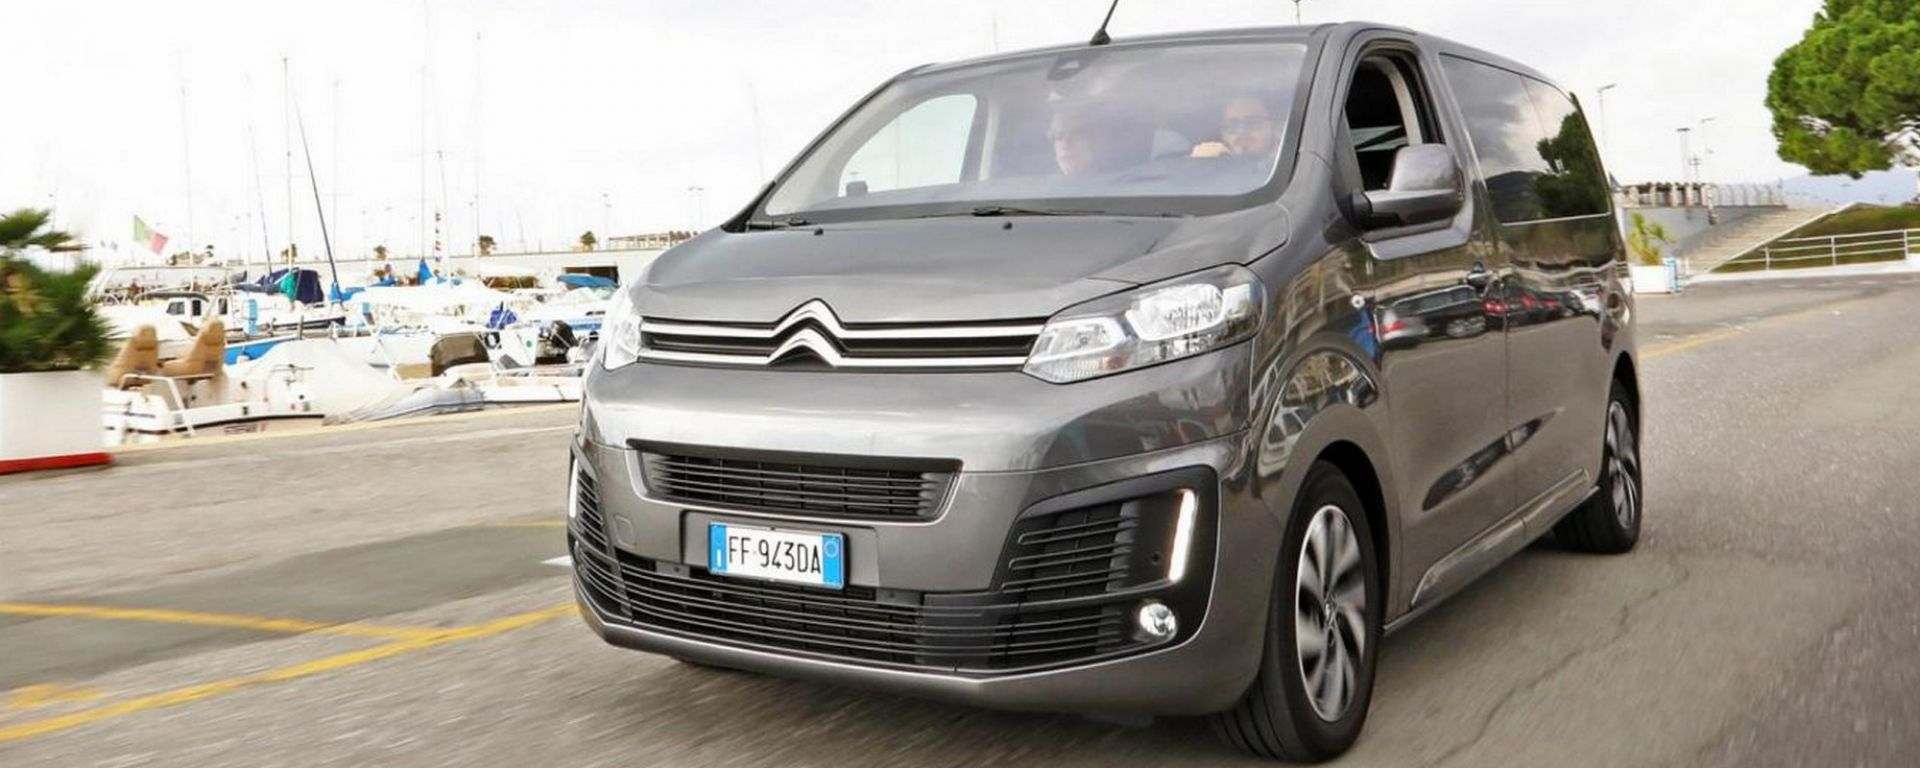 Citroen SpaceTourer: una business lounge a quattro ruote